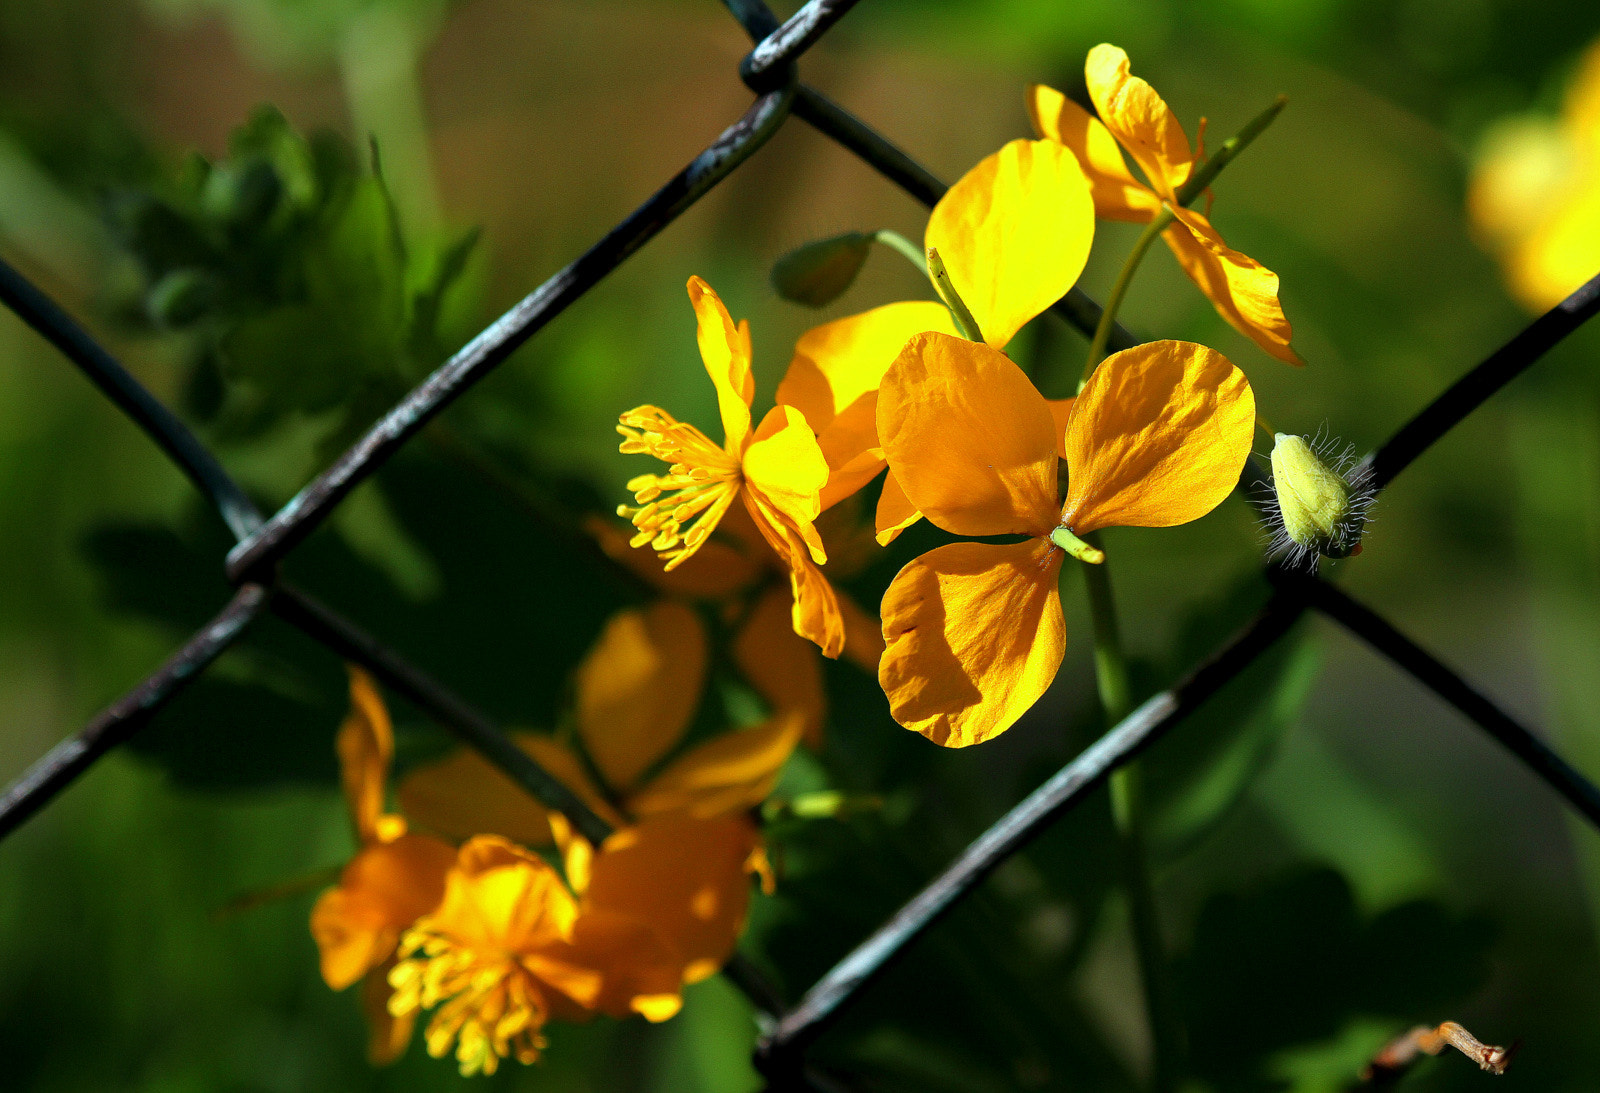 Photograph Flowers on a fence by Rainer Leiss on 500px